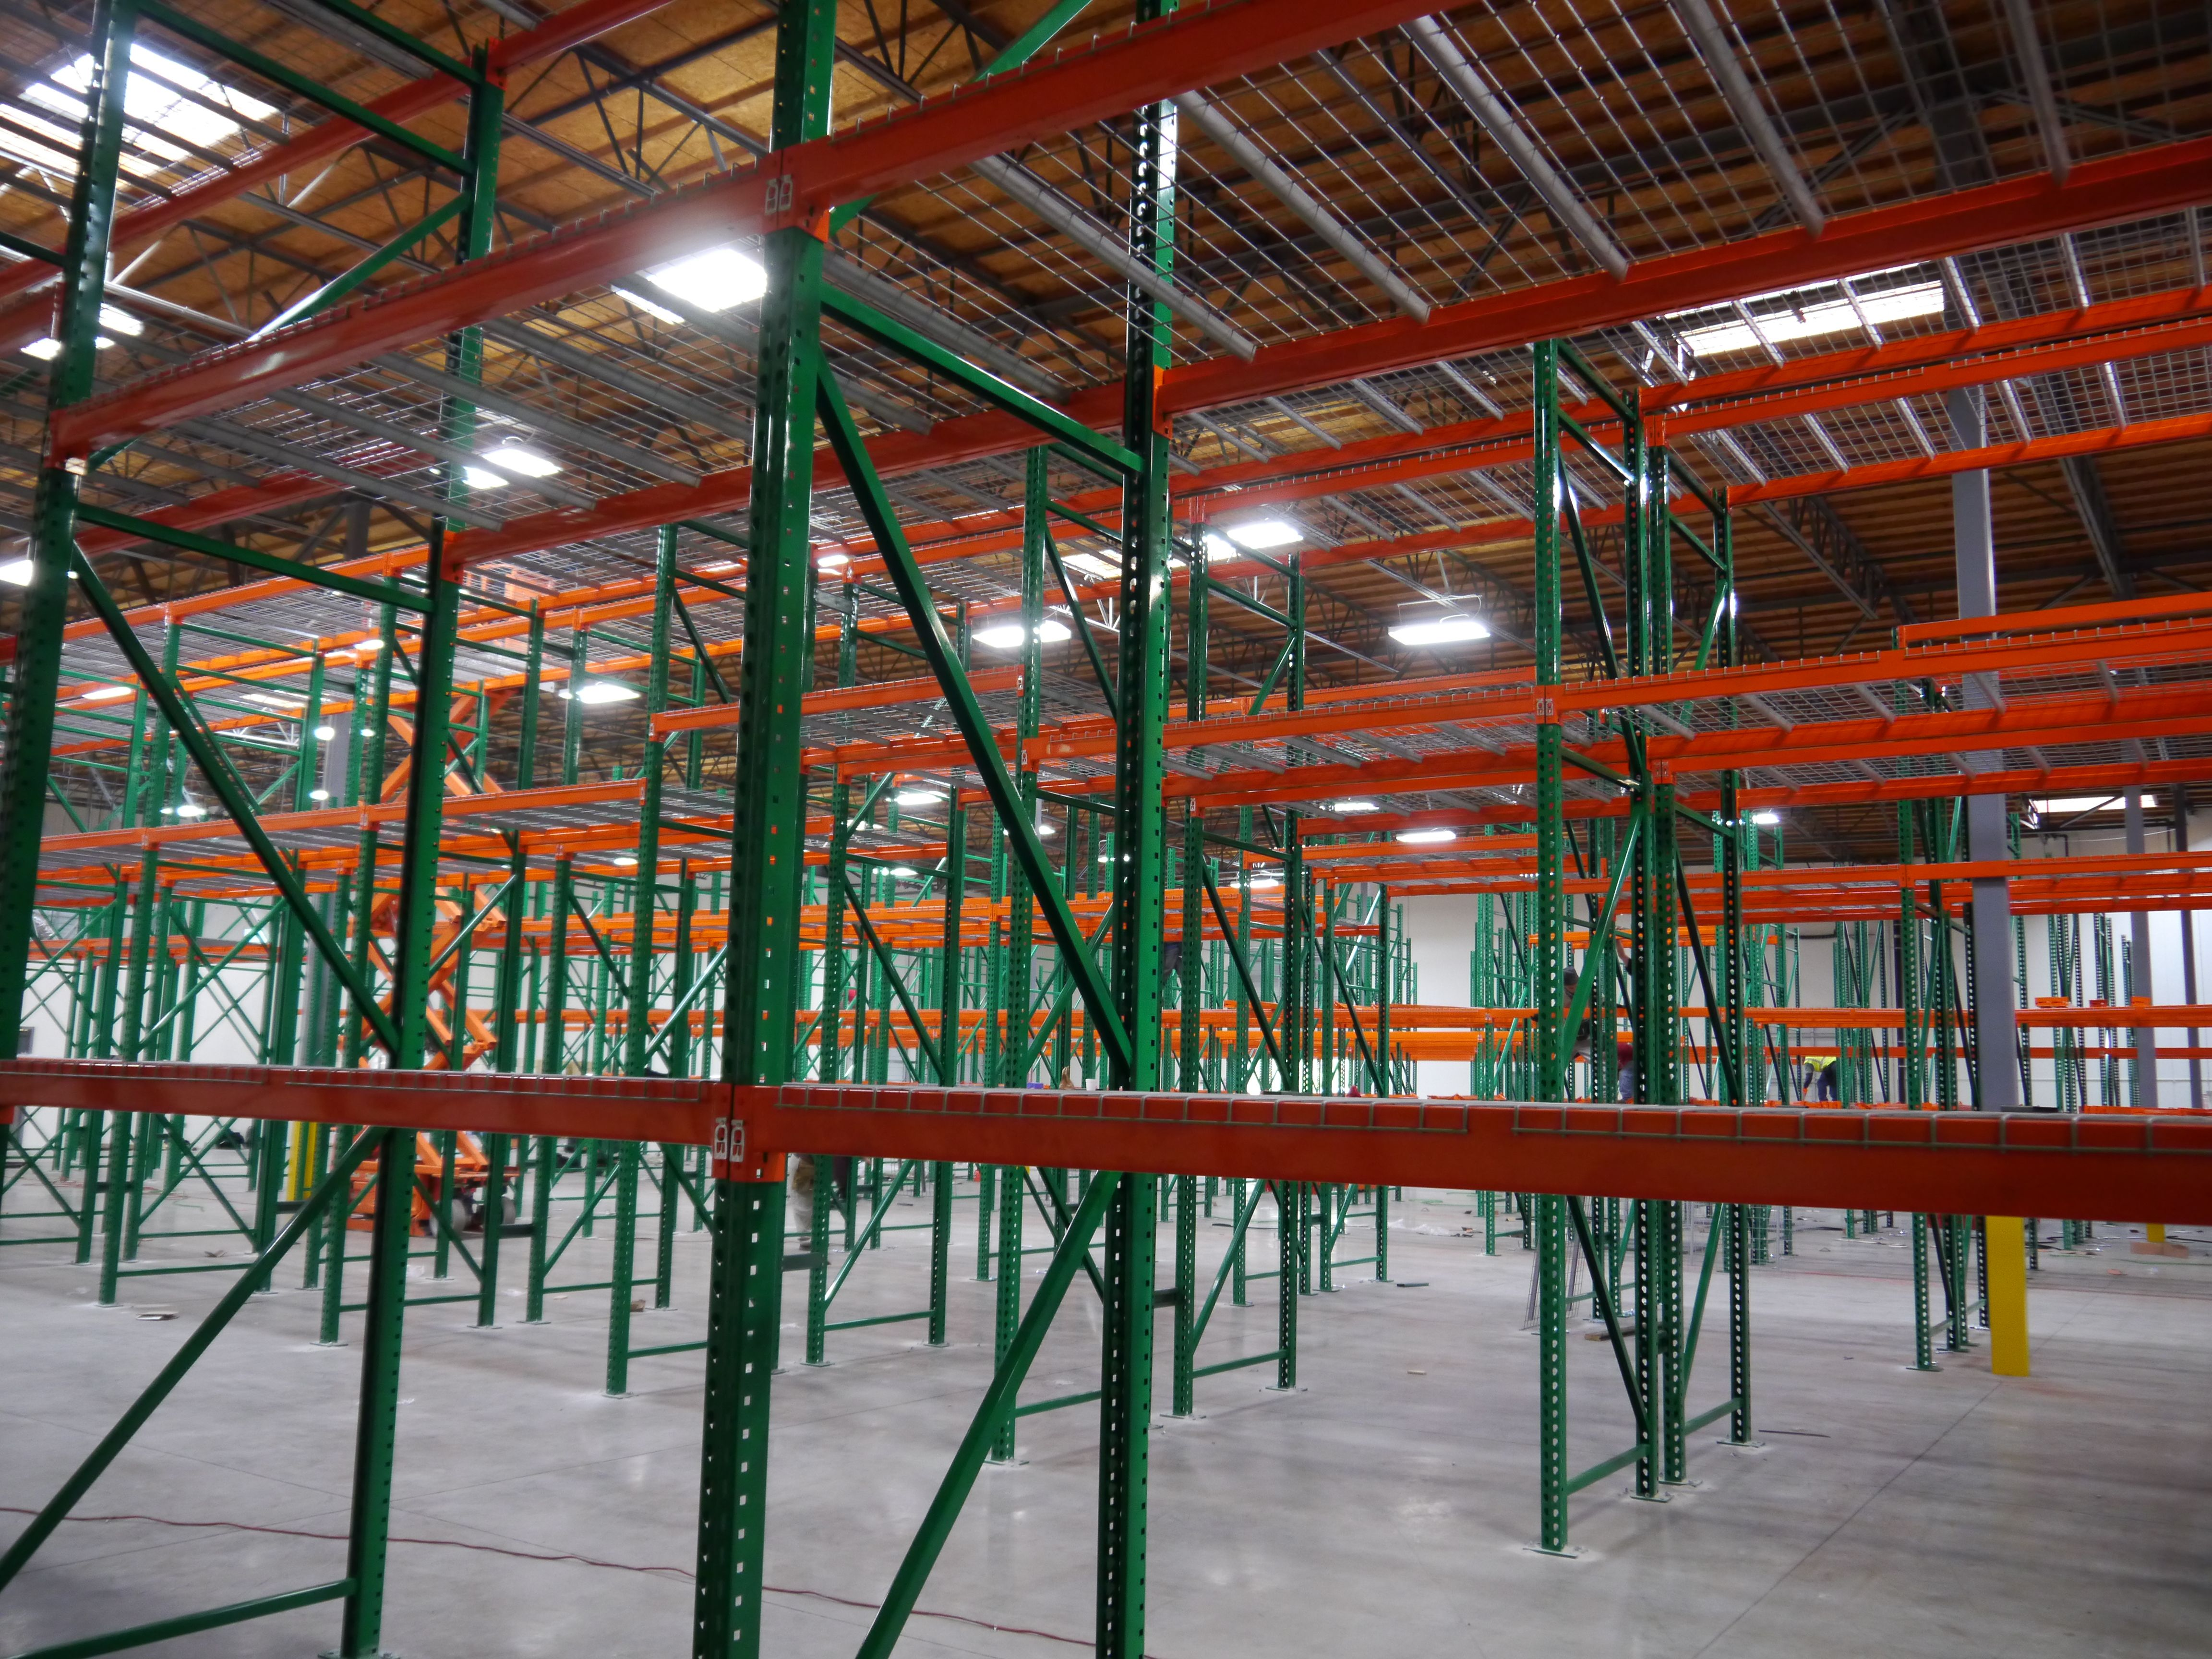 Interested In Pallet Racking Systems We Have Everything You Need For Your Warehouse Give Our Team A Call Today For A Free Quote 909 793 5914 Pallet Rack